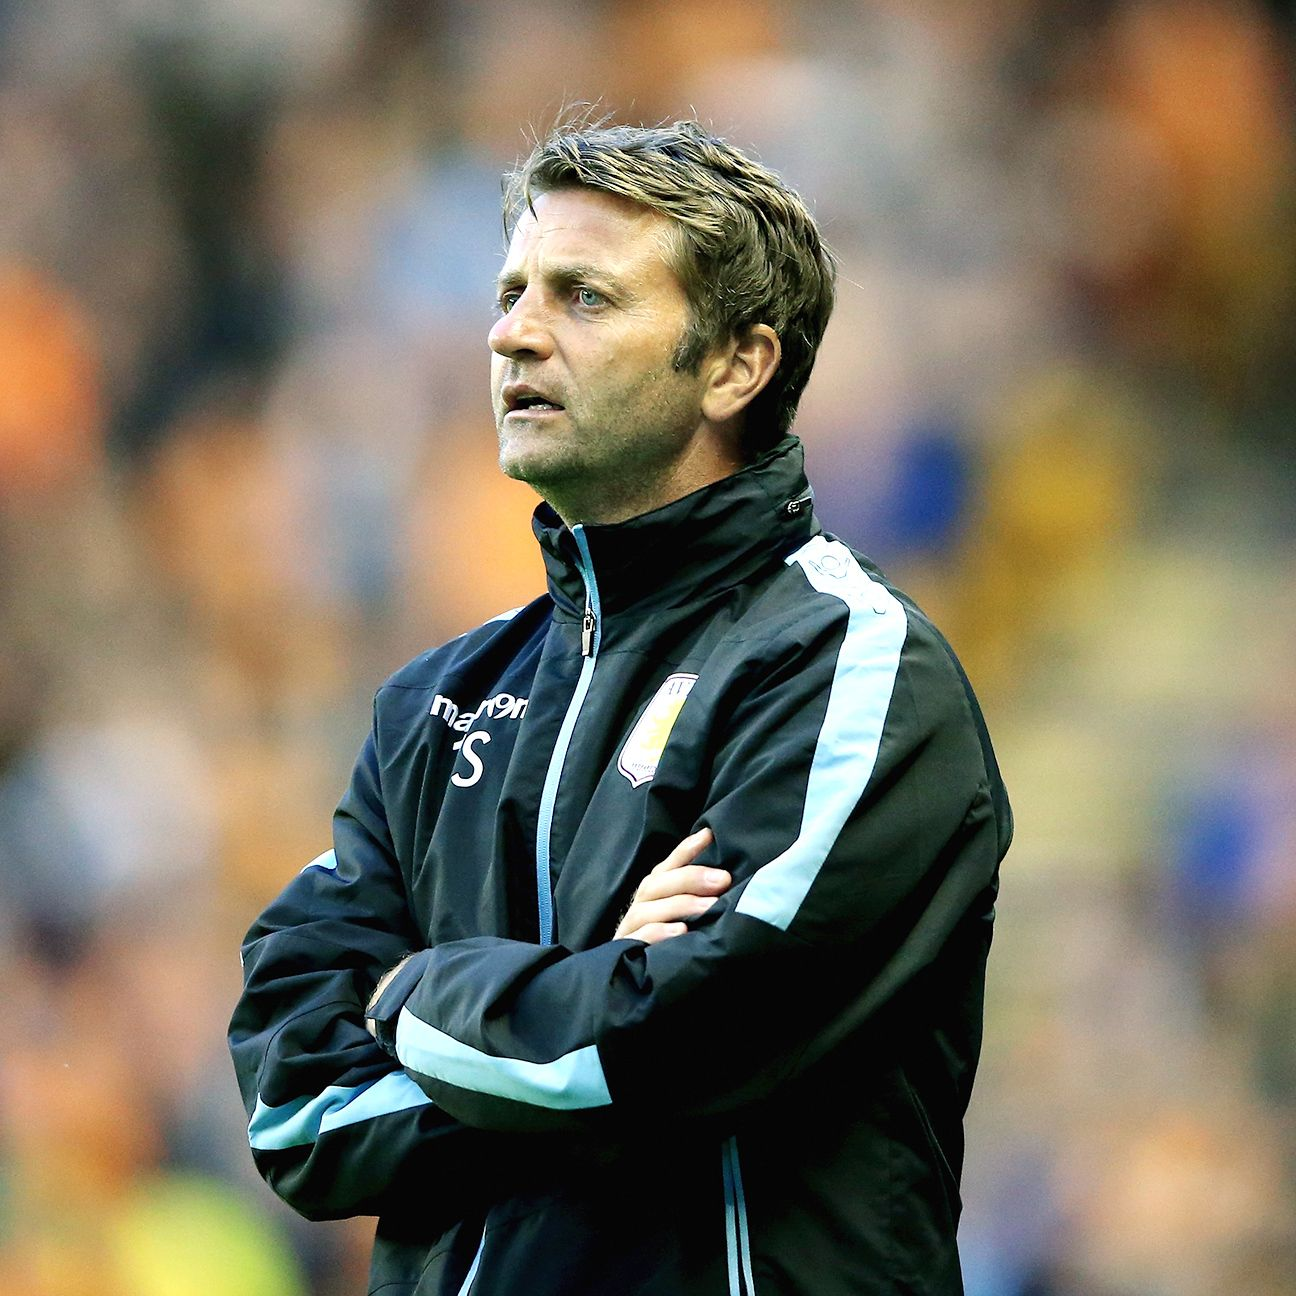 With a win over Man United, Tim Sherwood would cement a place in the hearts of Aston Villa fans.